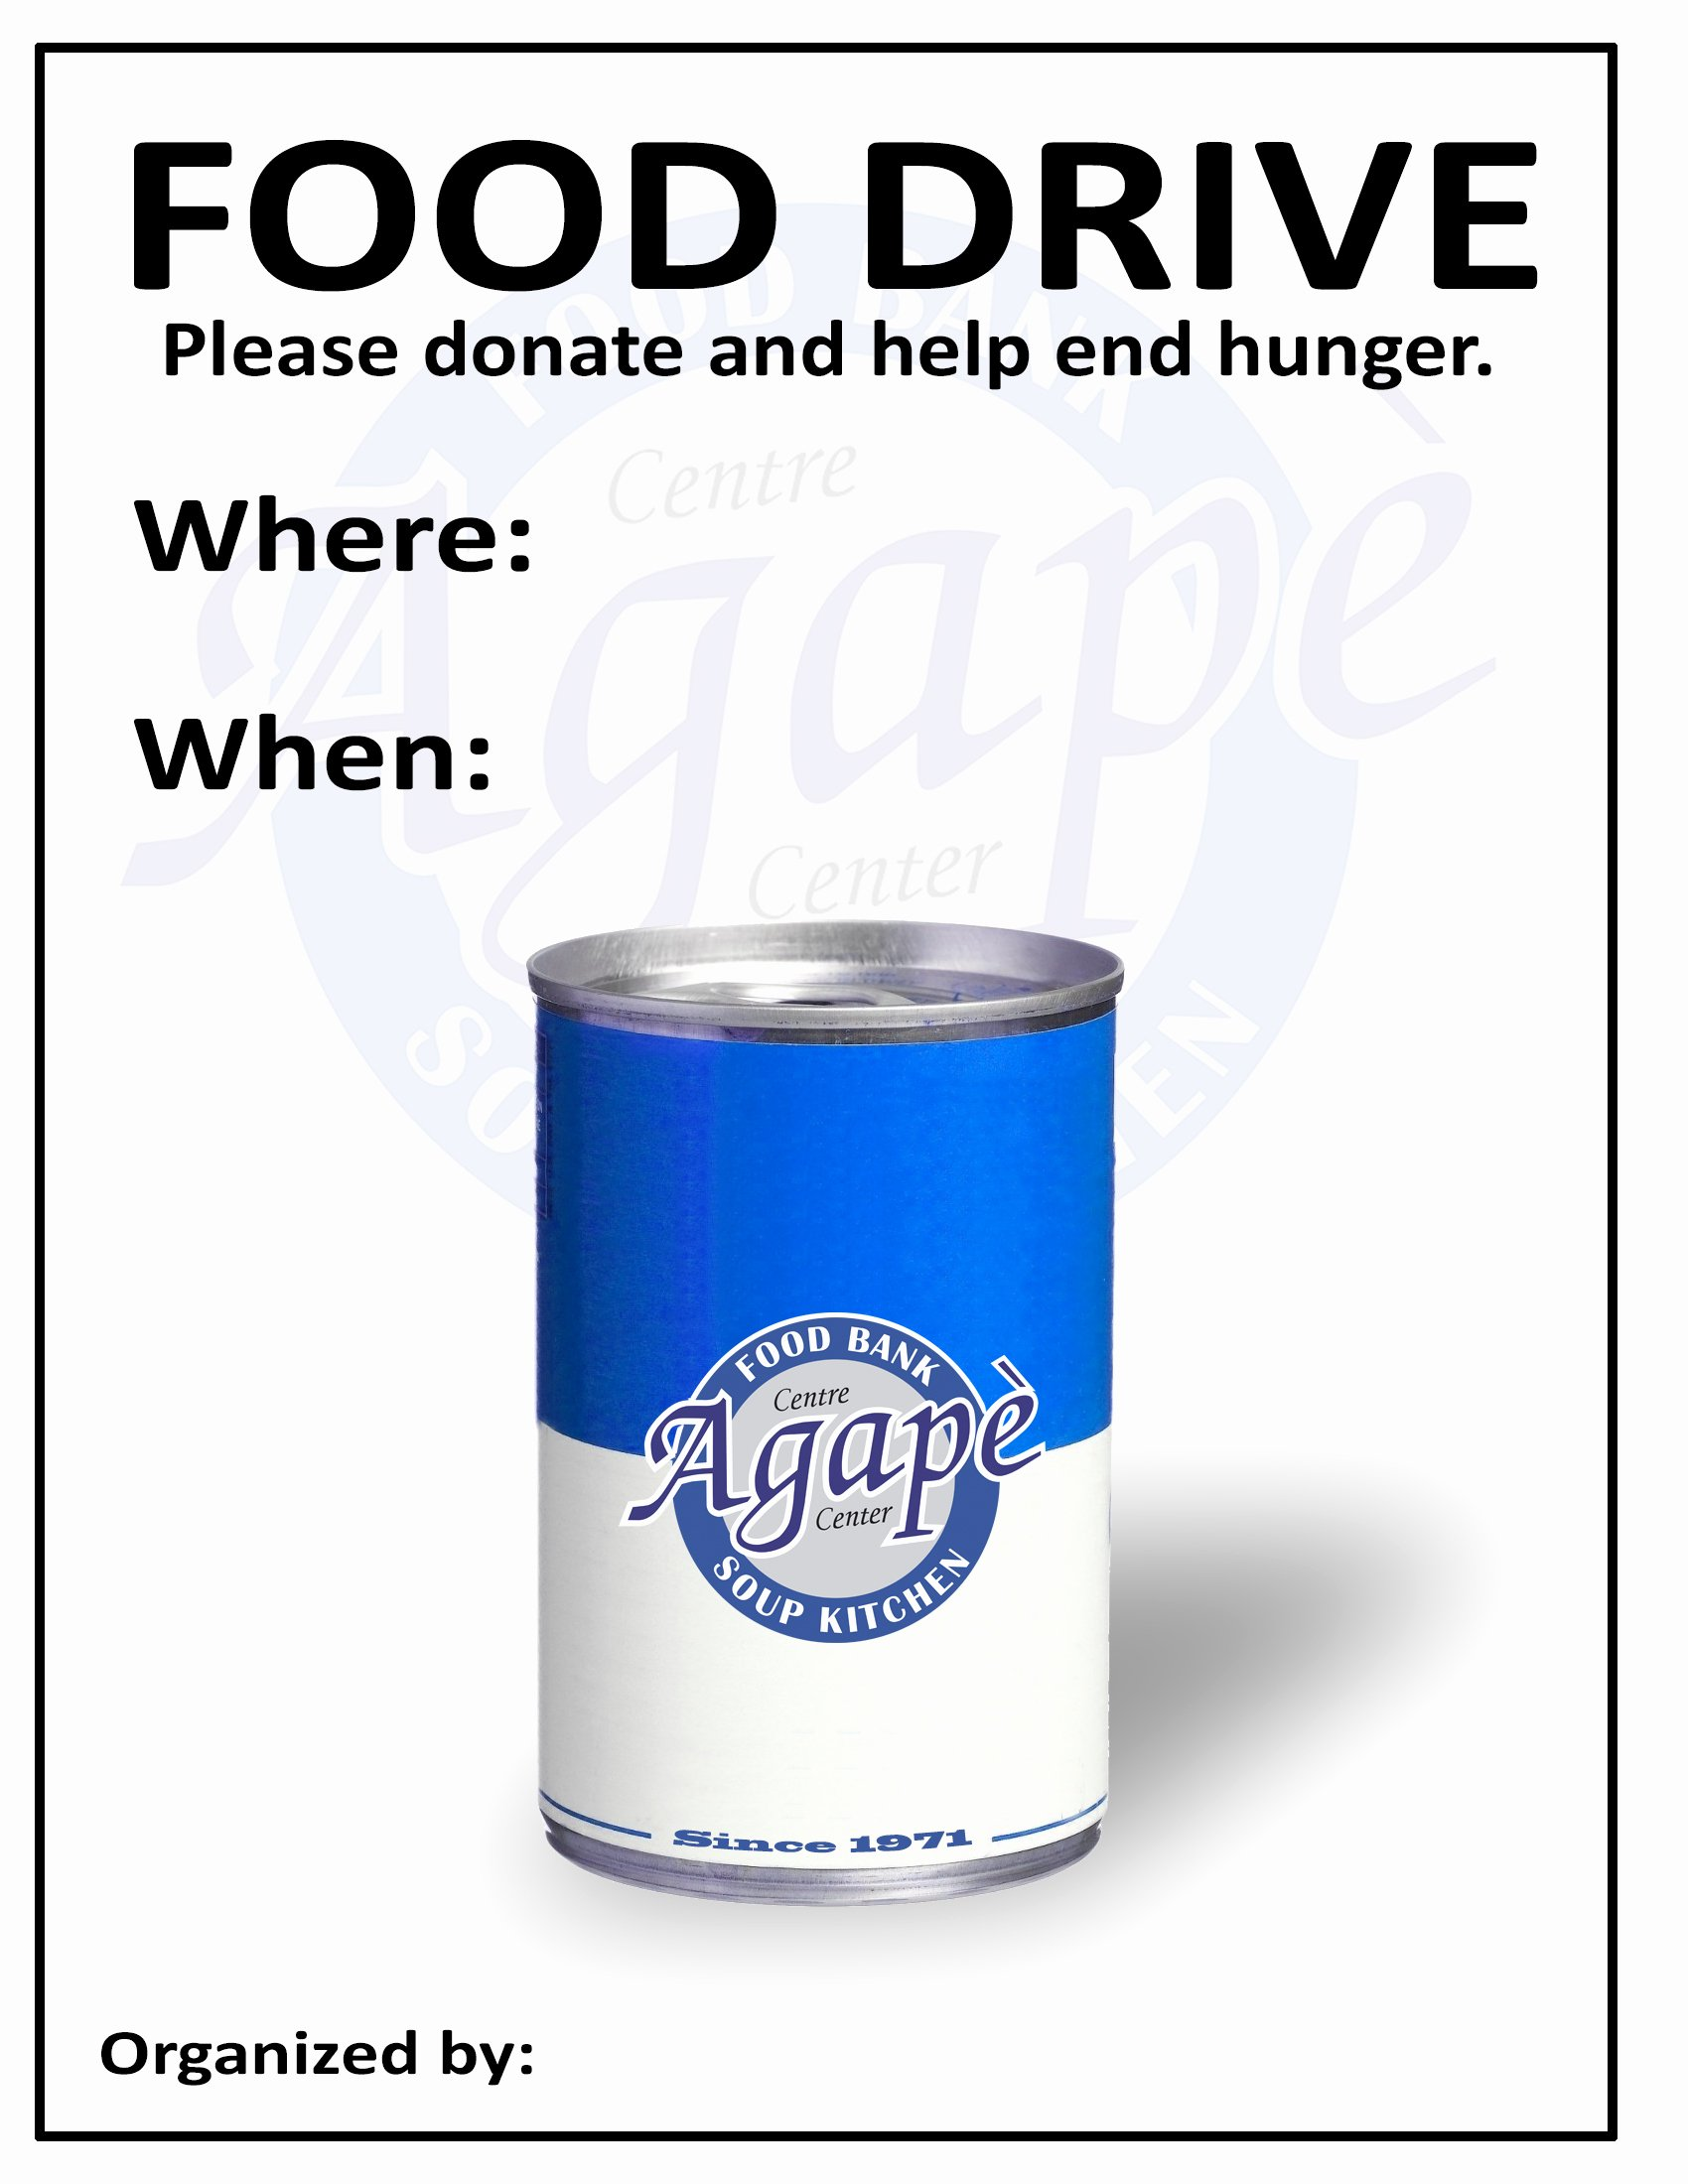 Food Drive Flyer Template Awesome Host A Food Drive